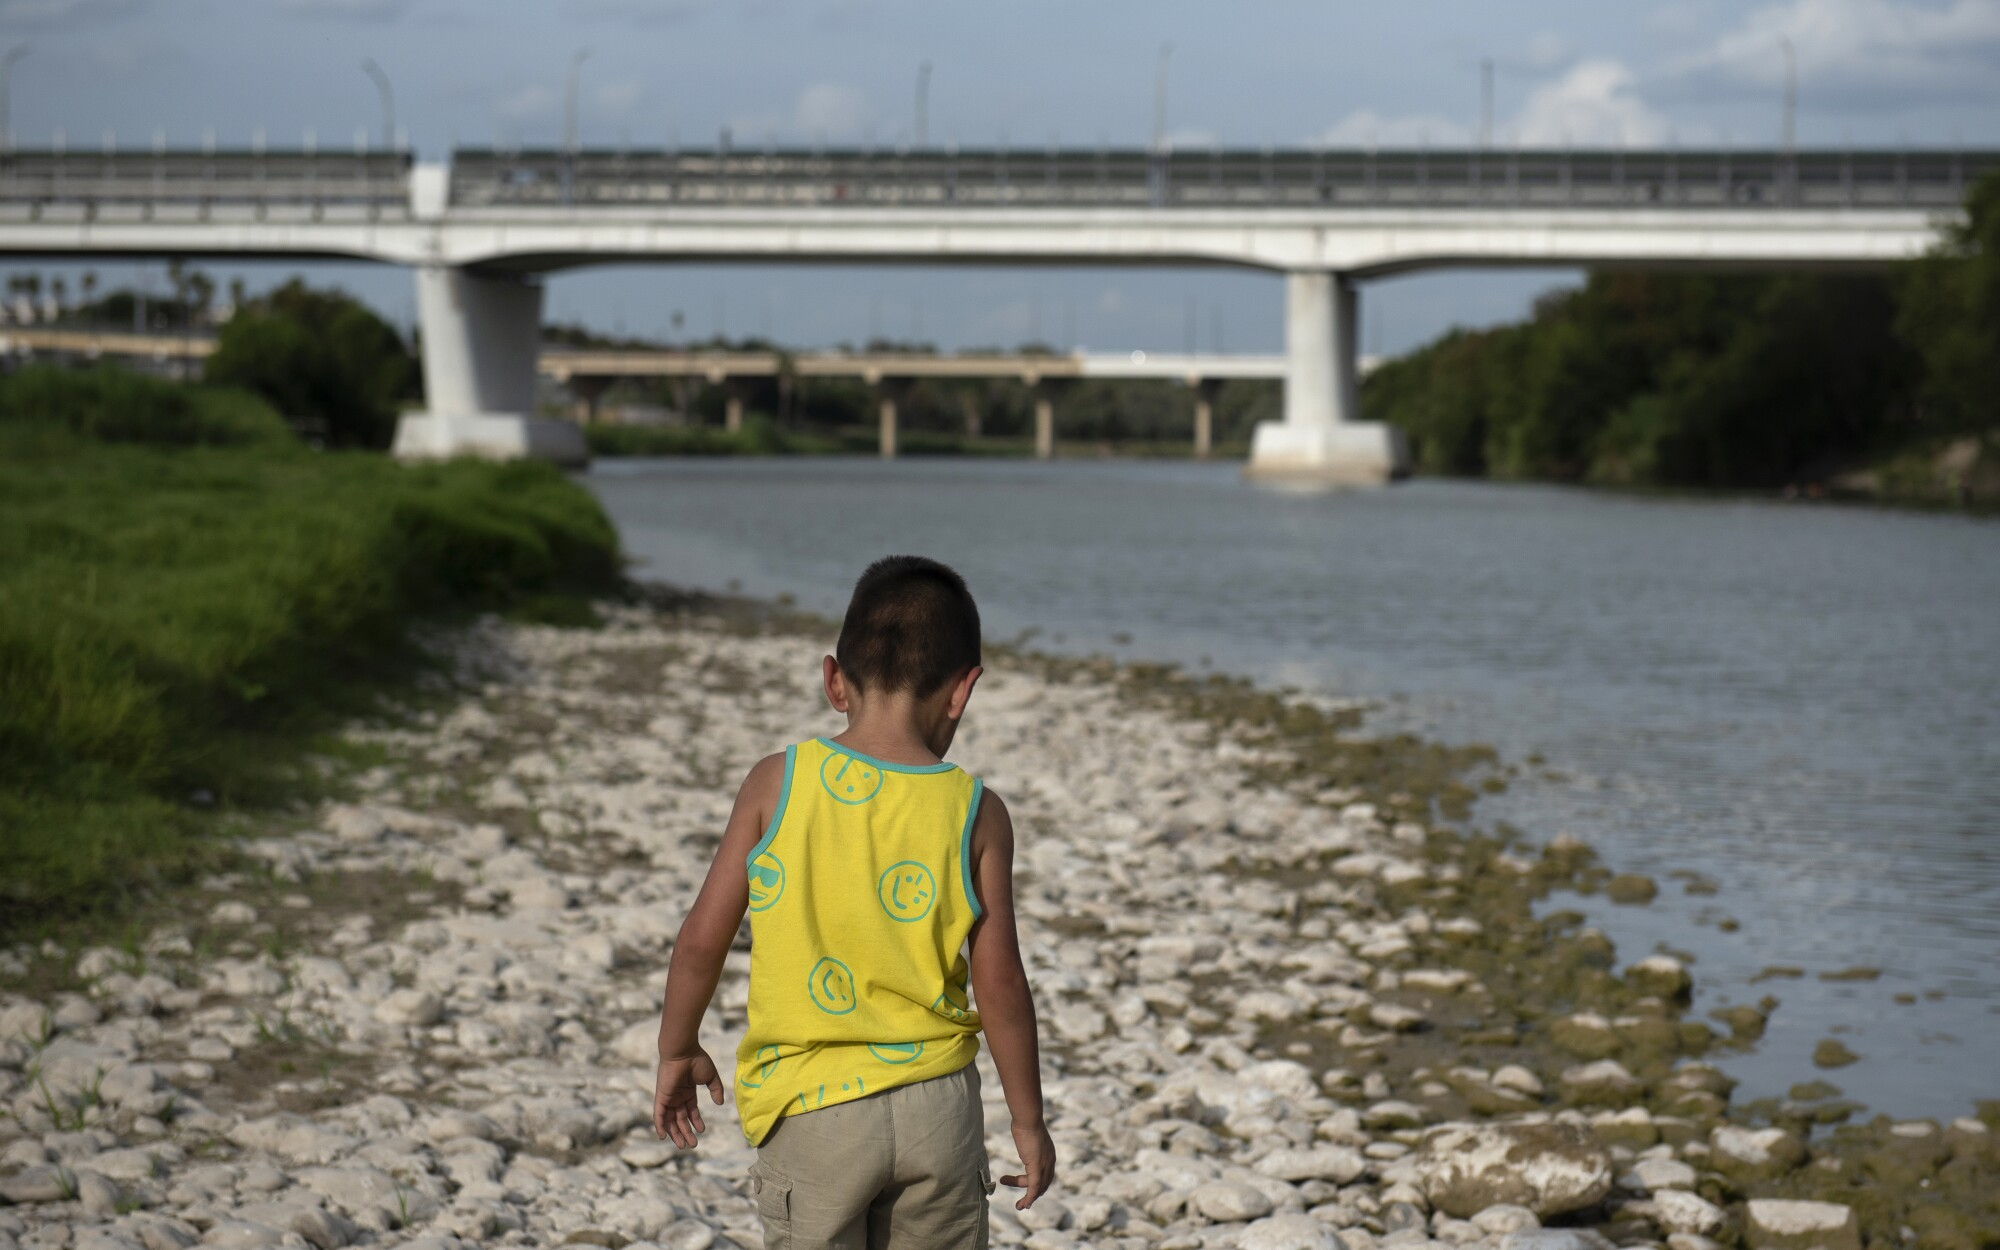 A child walks along the bank of the Rio Grande in Laredo, Texas.